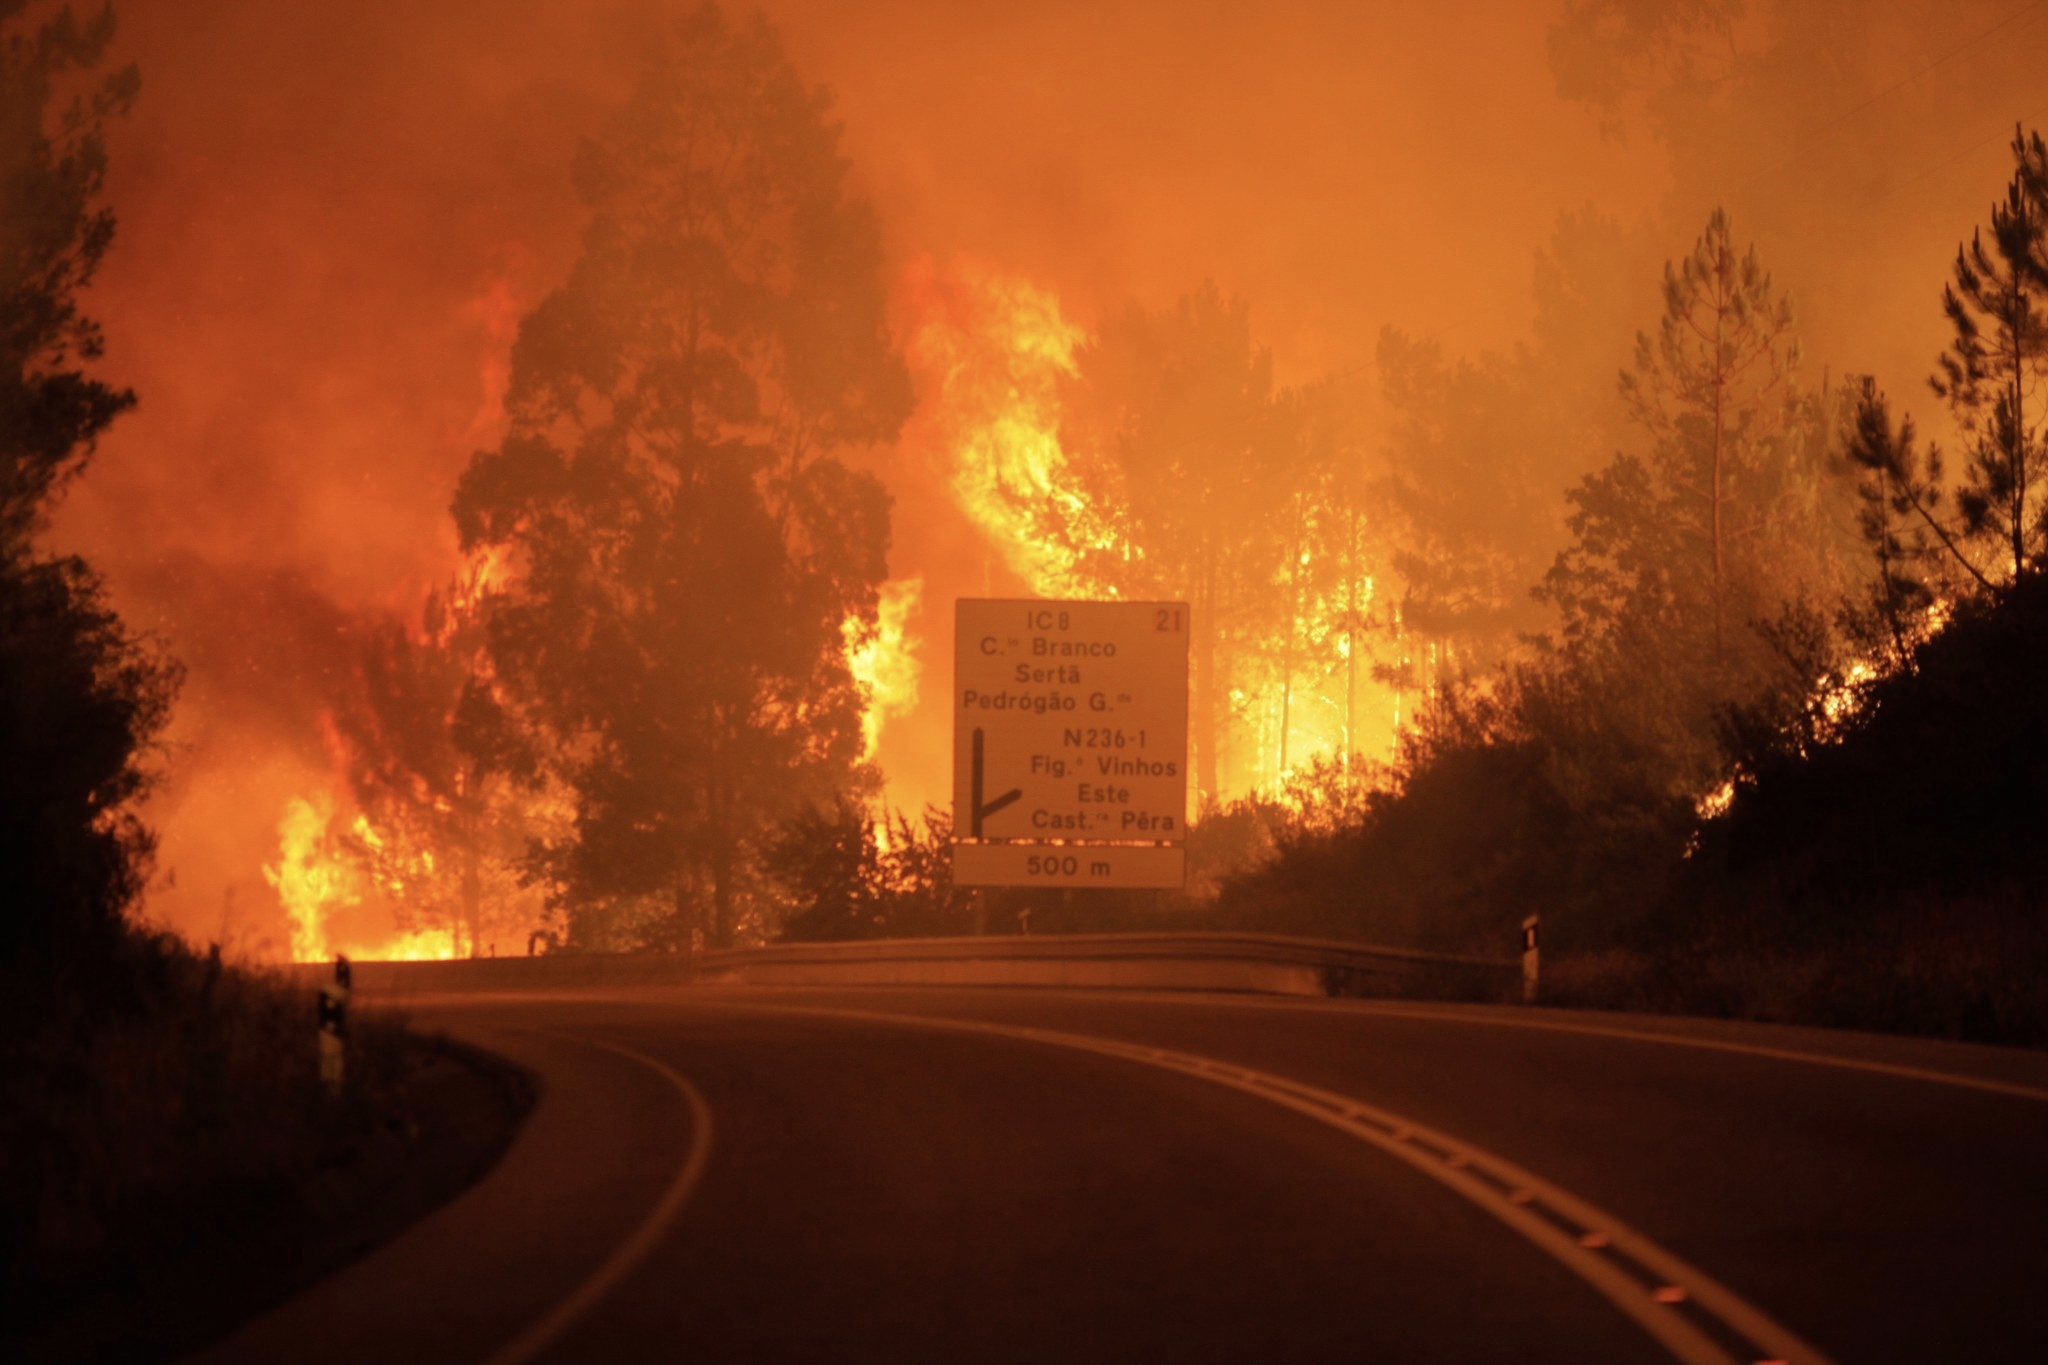 Portugal, Newsfeeds24.com, Newsfeeds, News, Wildfire, Fire, Report,Spain,